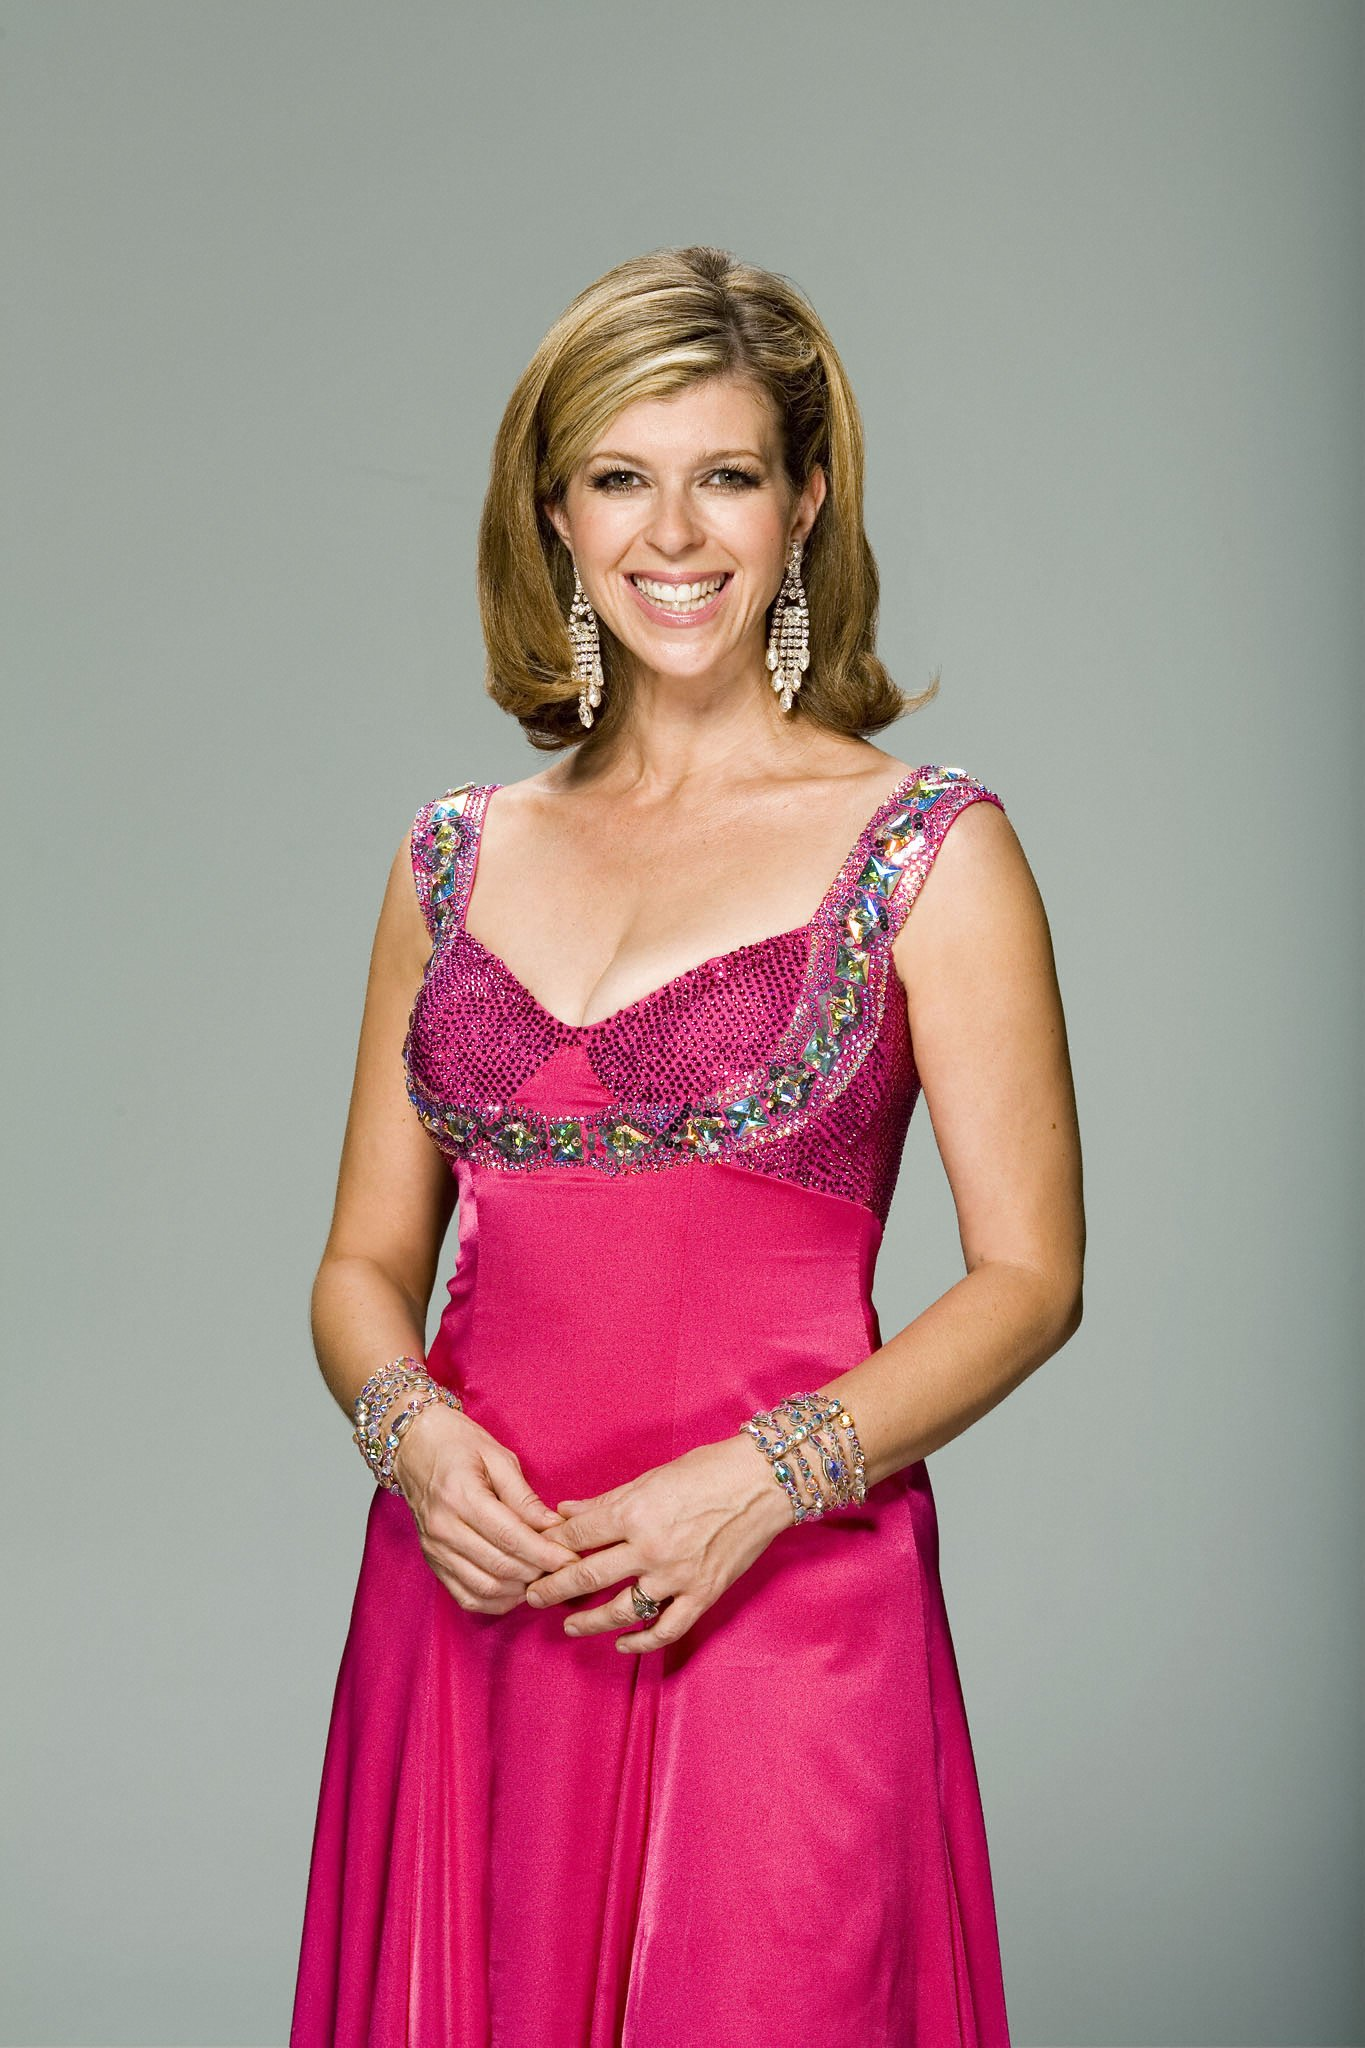 Kate Garraway paid damages over affair claims